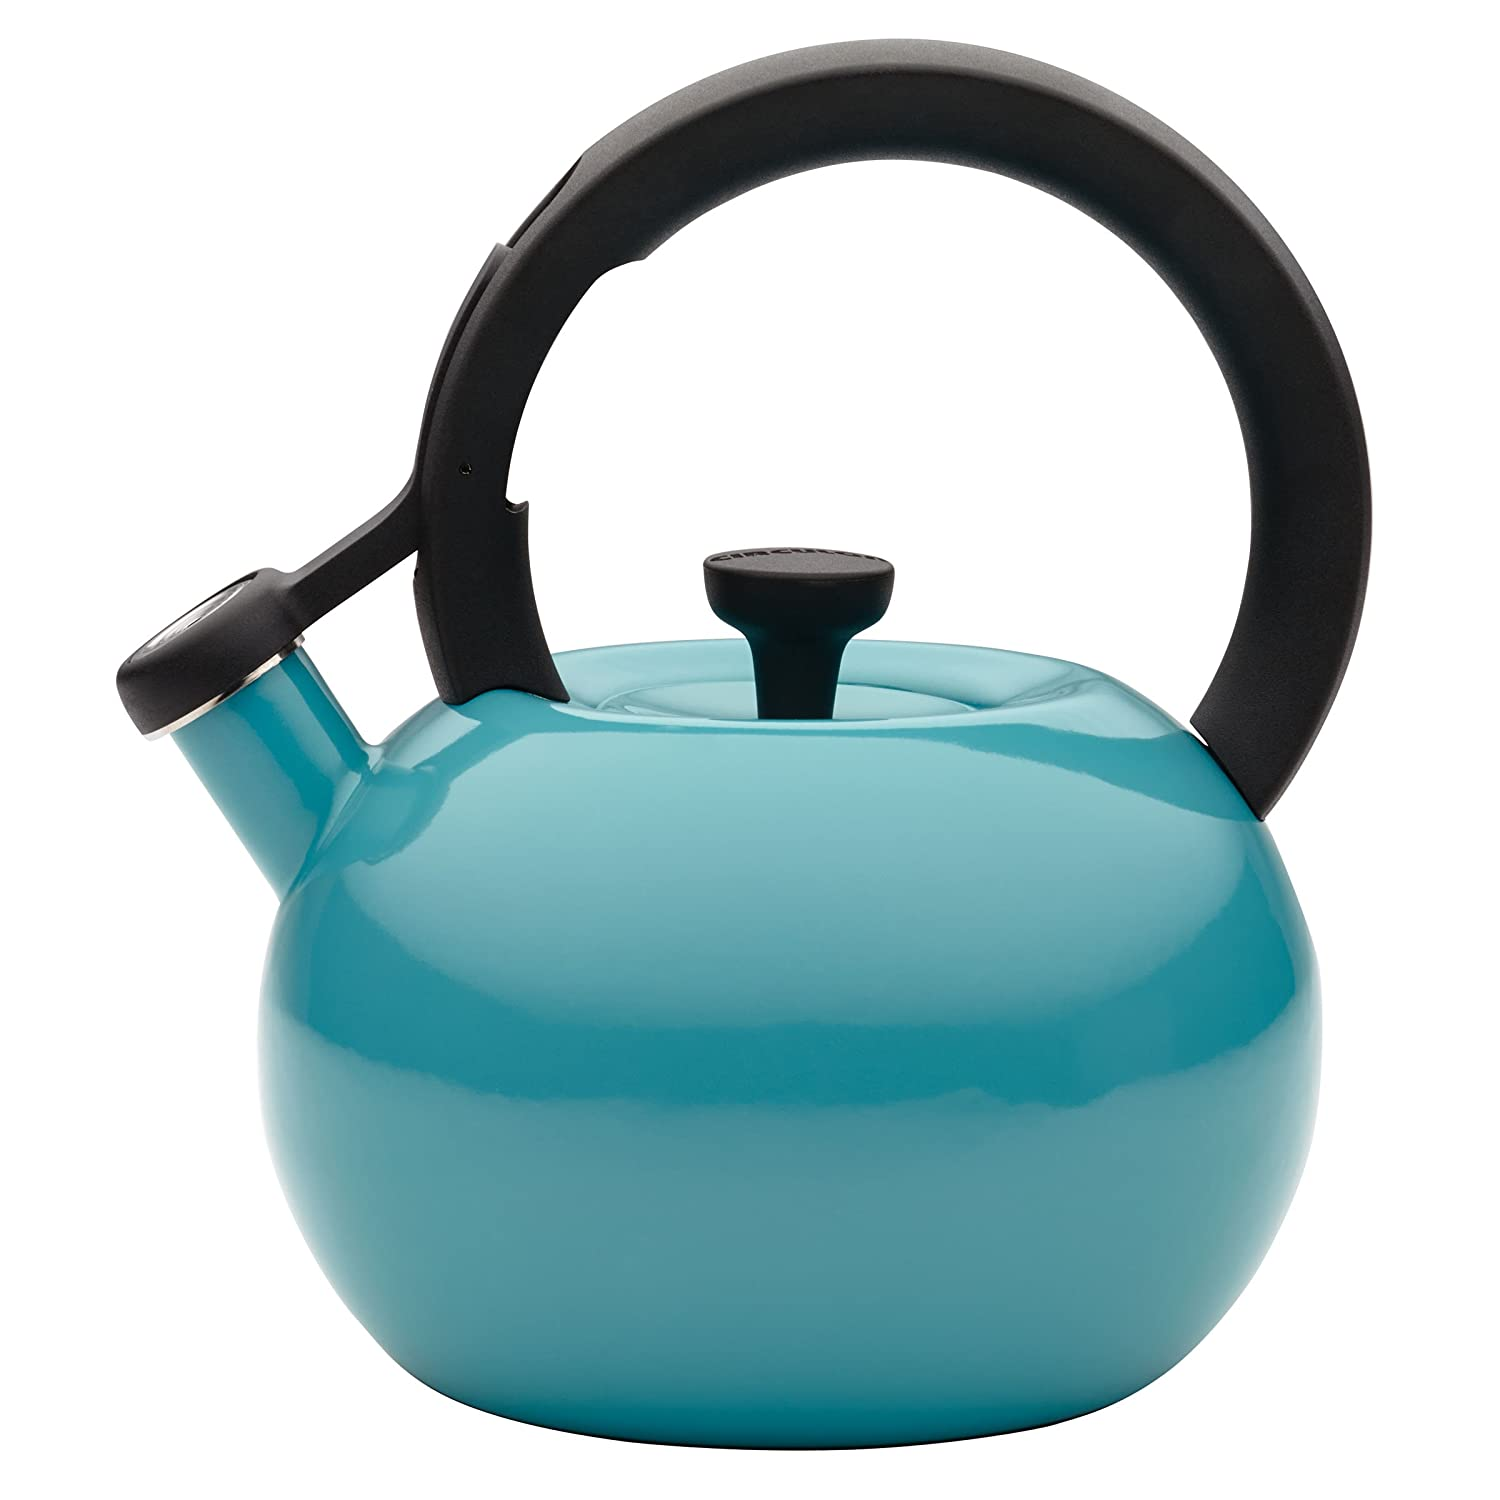 10 Best Tea Kettles 2019 Review and Guide 2